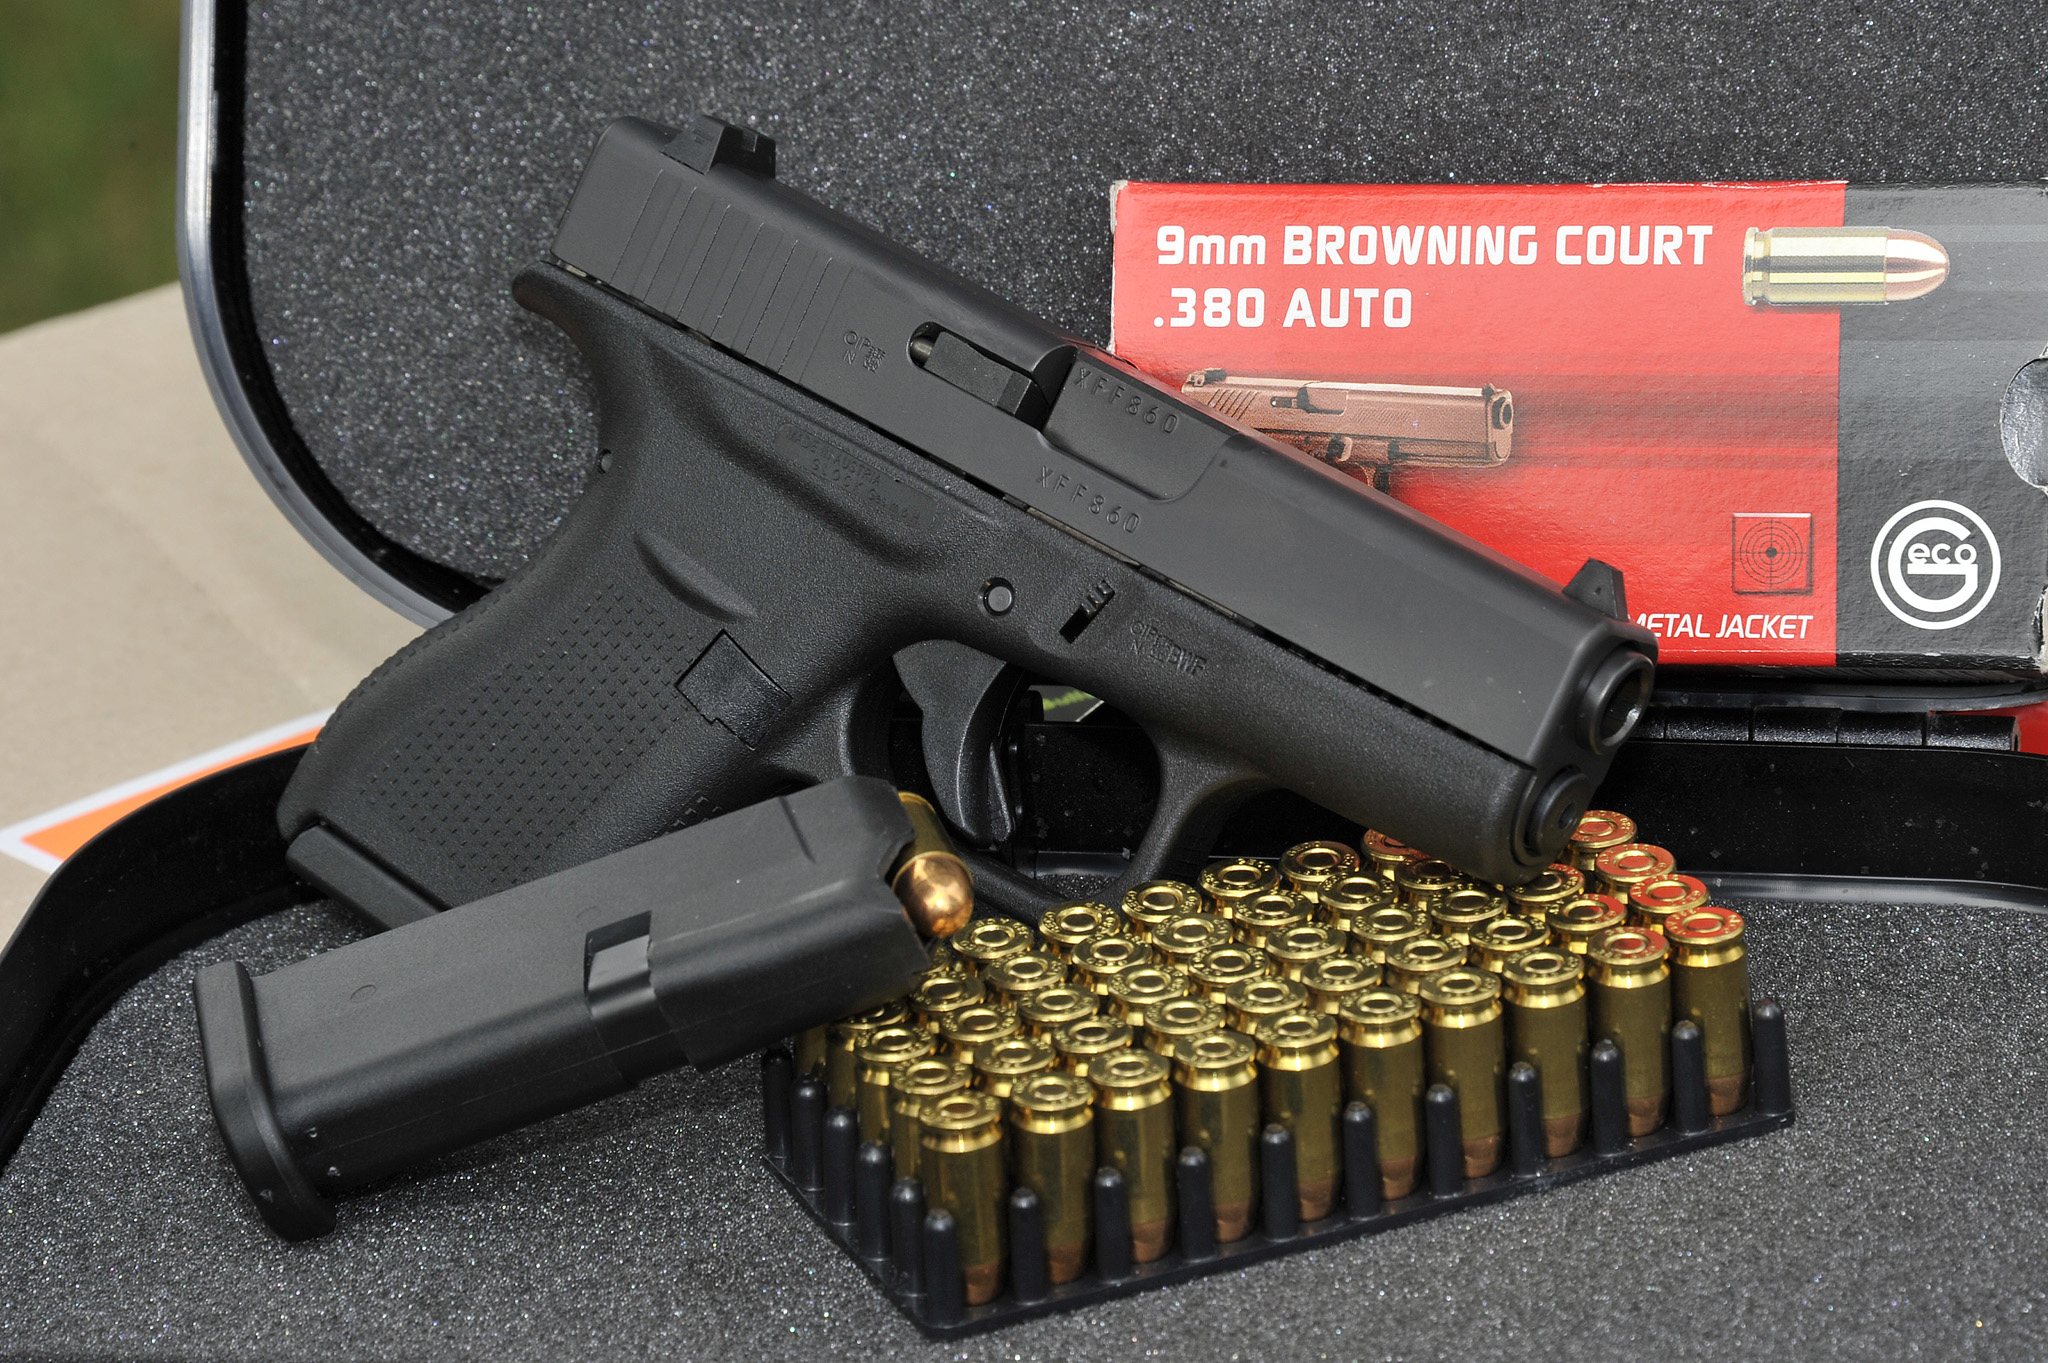 glock g42 semiauto subcompact in 380 auto all4shooters. Black Bedroom Furniture Sets. Home Design Ideas